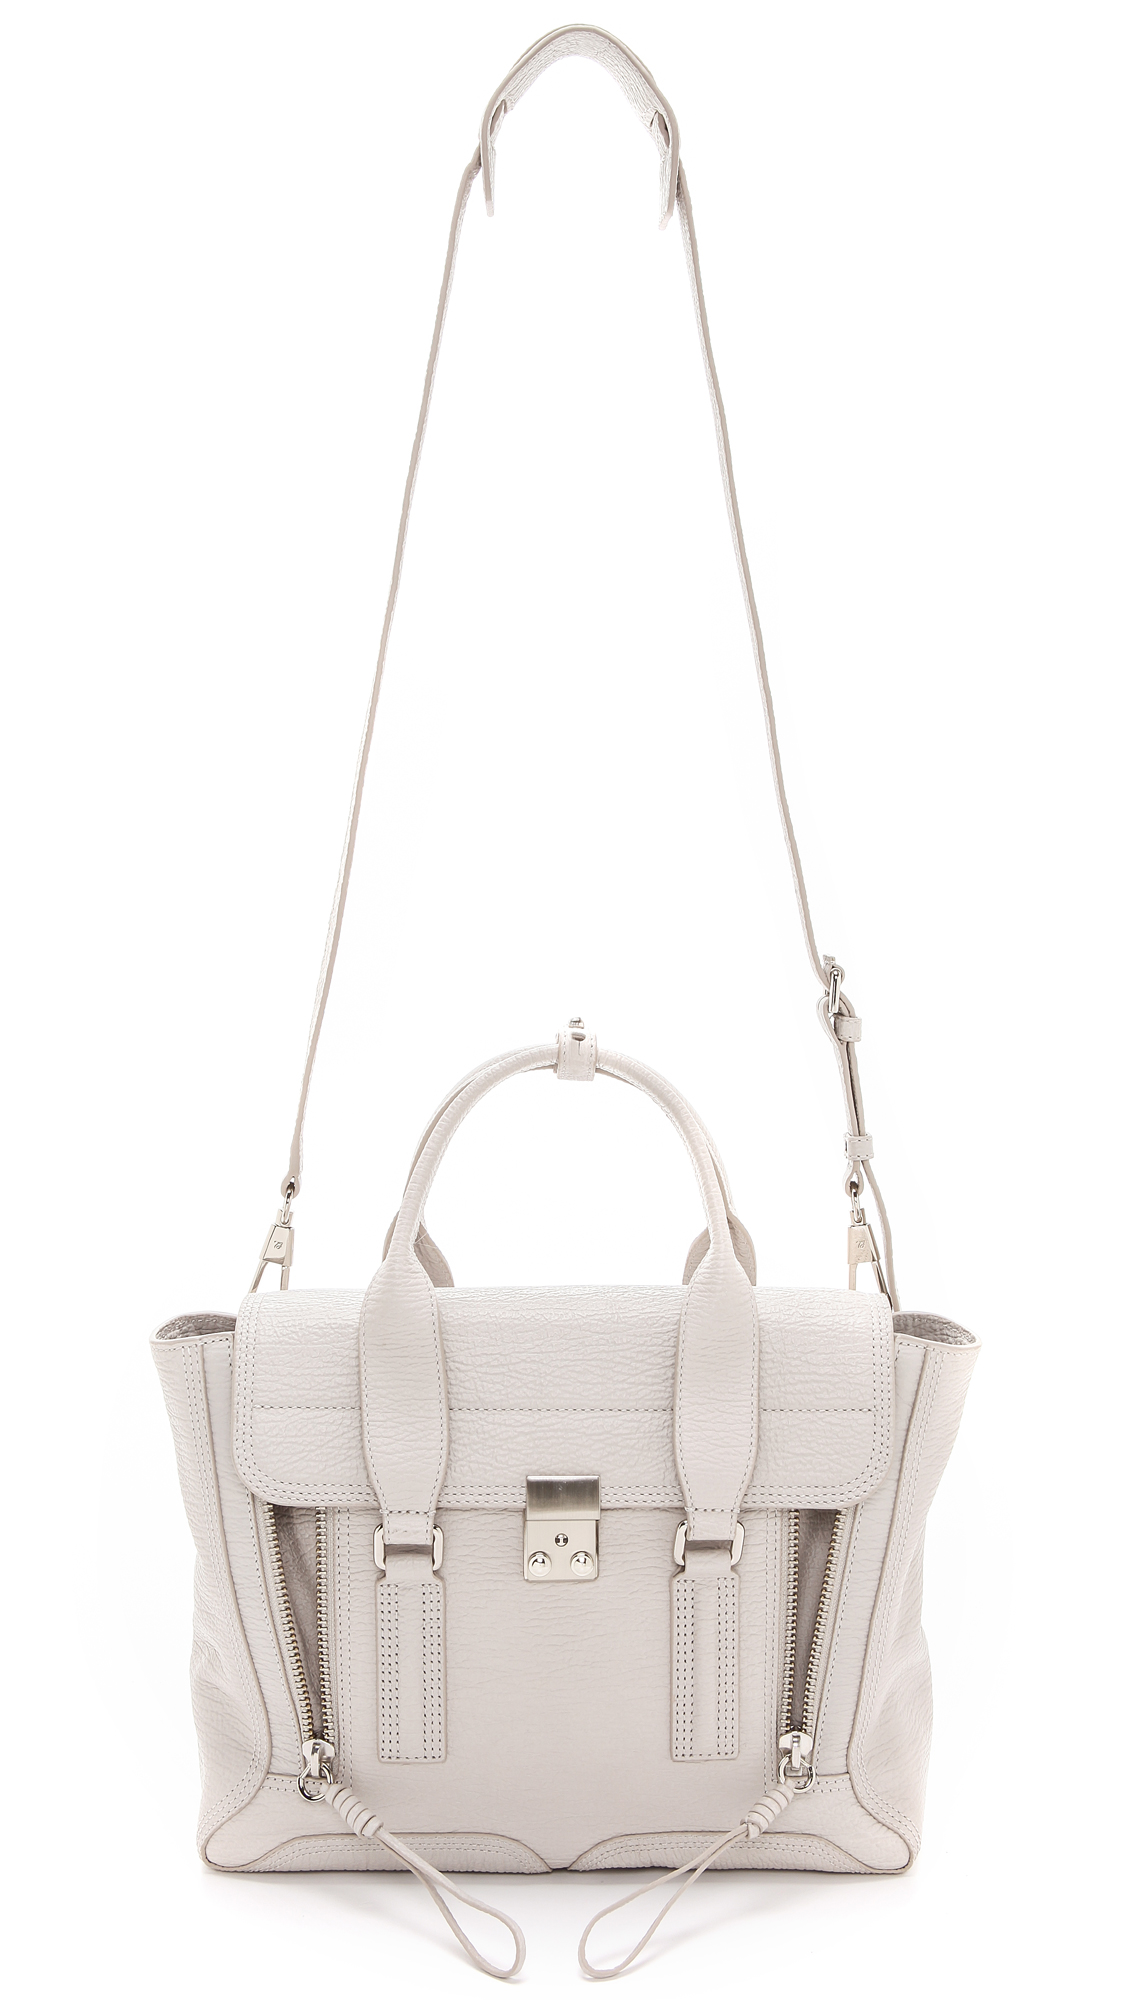 31 Phillip Lim Pashli Medium Satchel Shopbop Lc030 Longchample Pliage The City